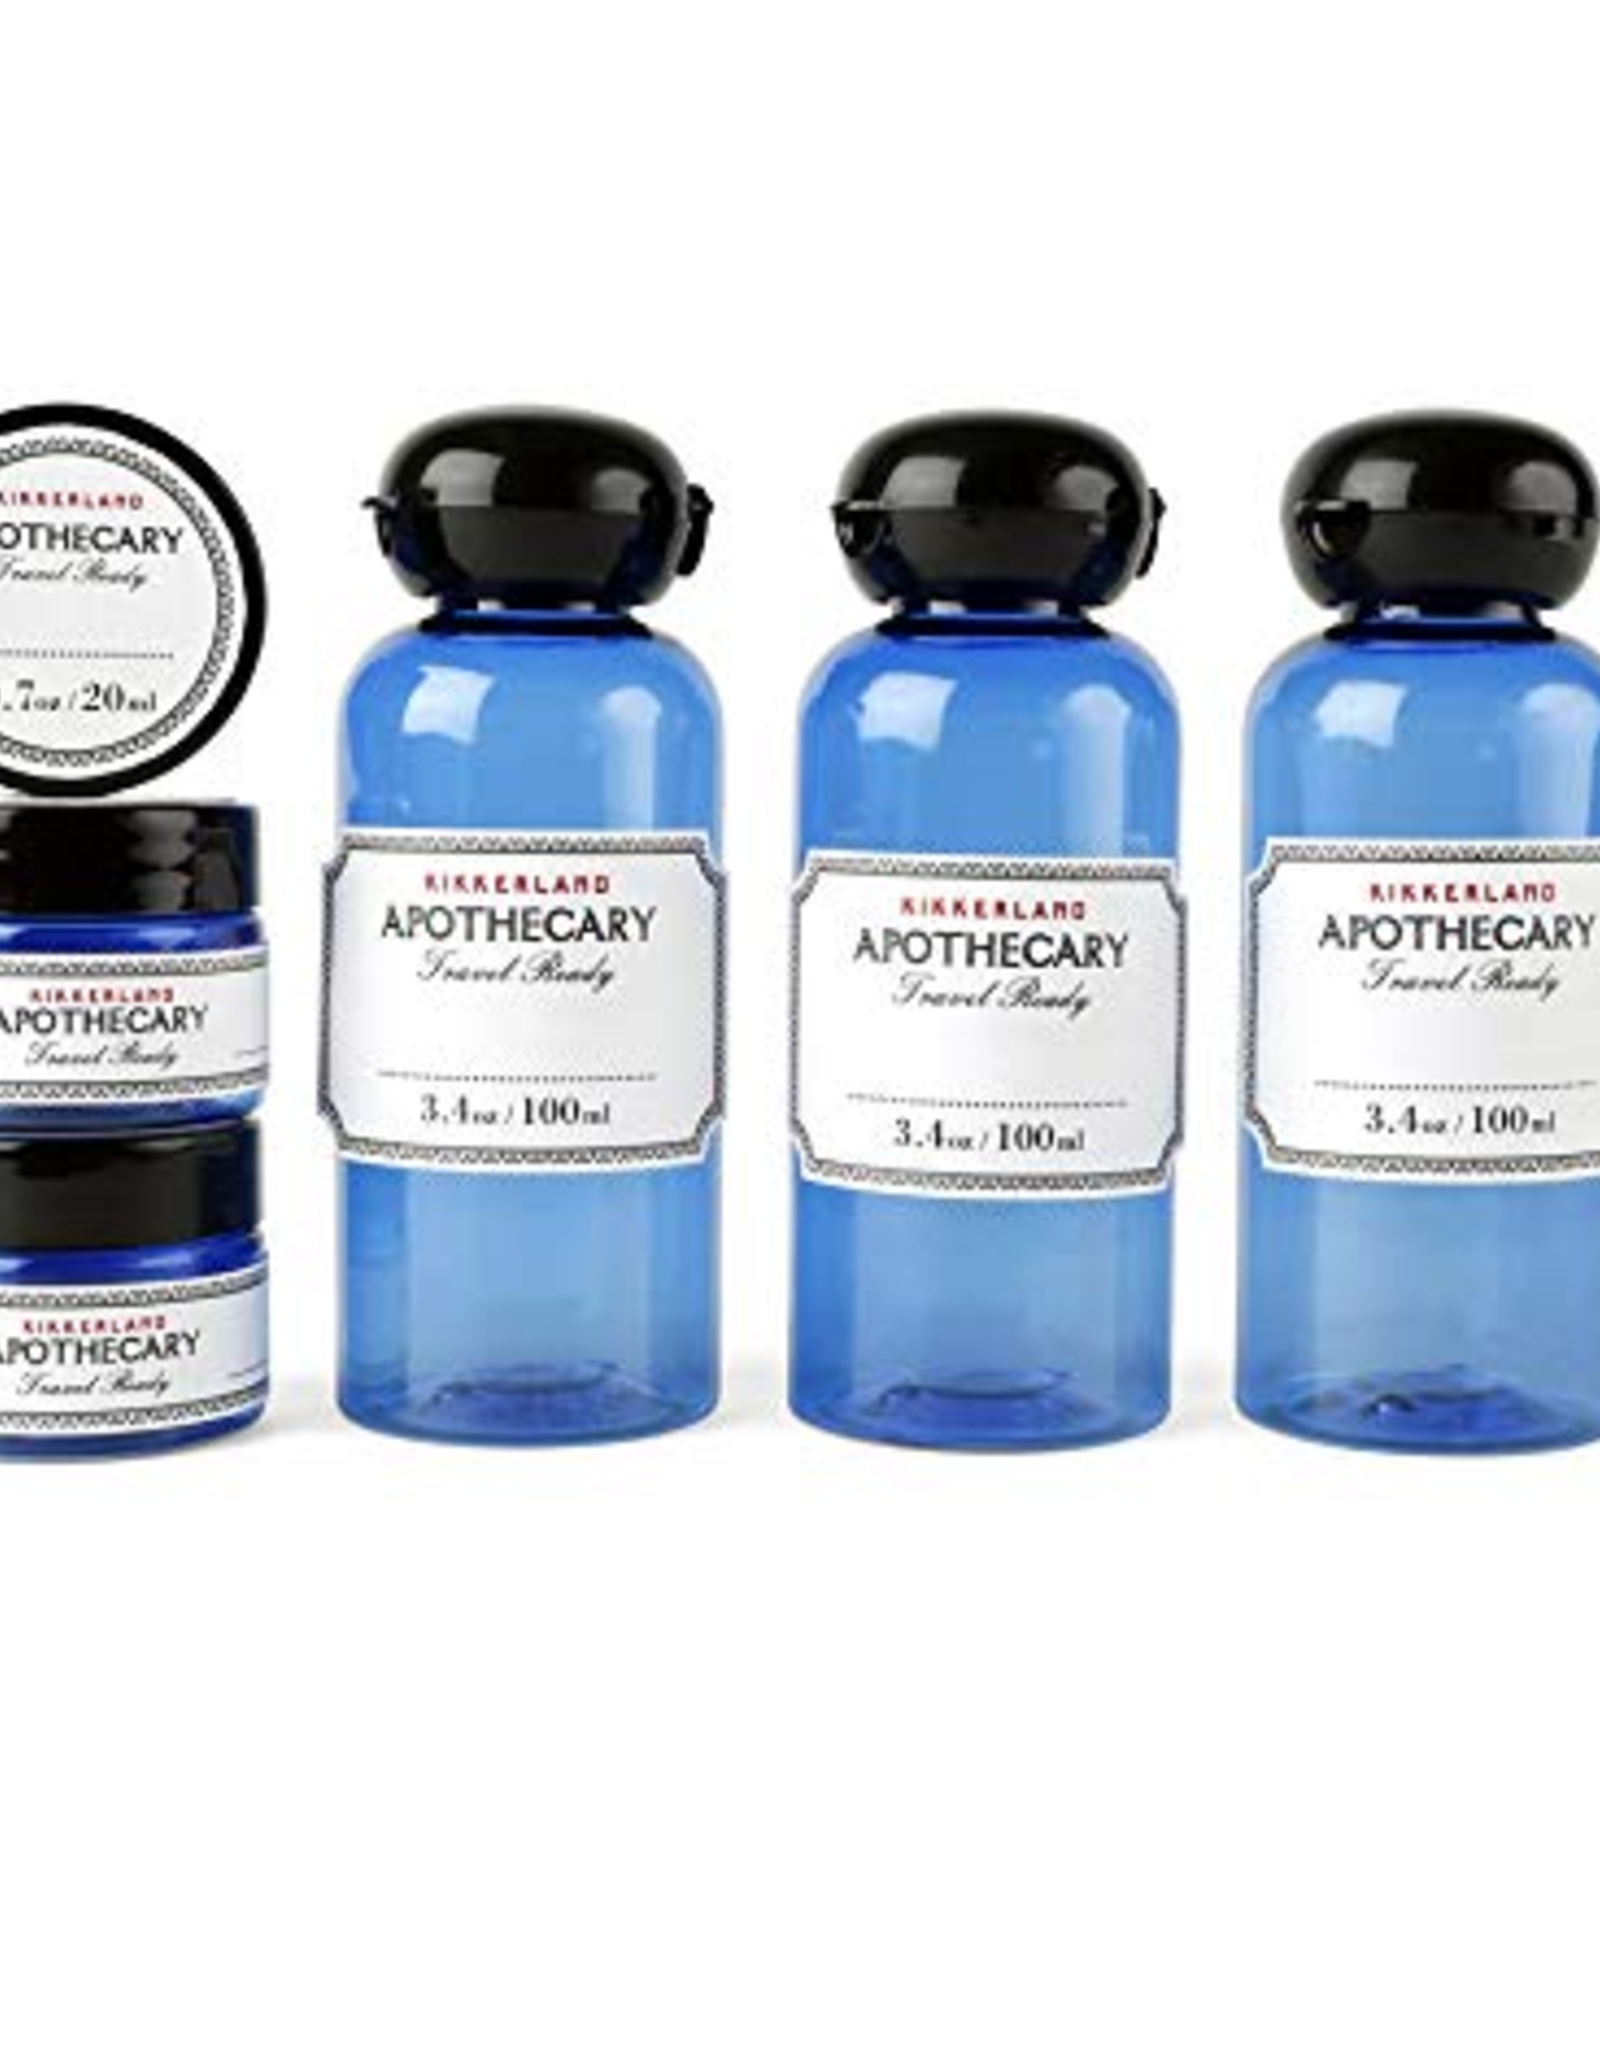 The Weekender Apothecary Travel Set